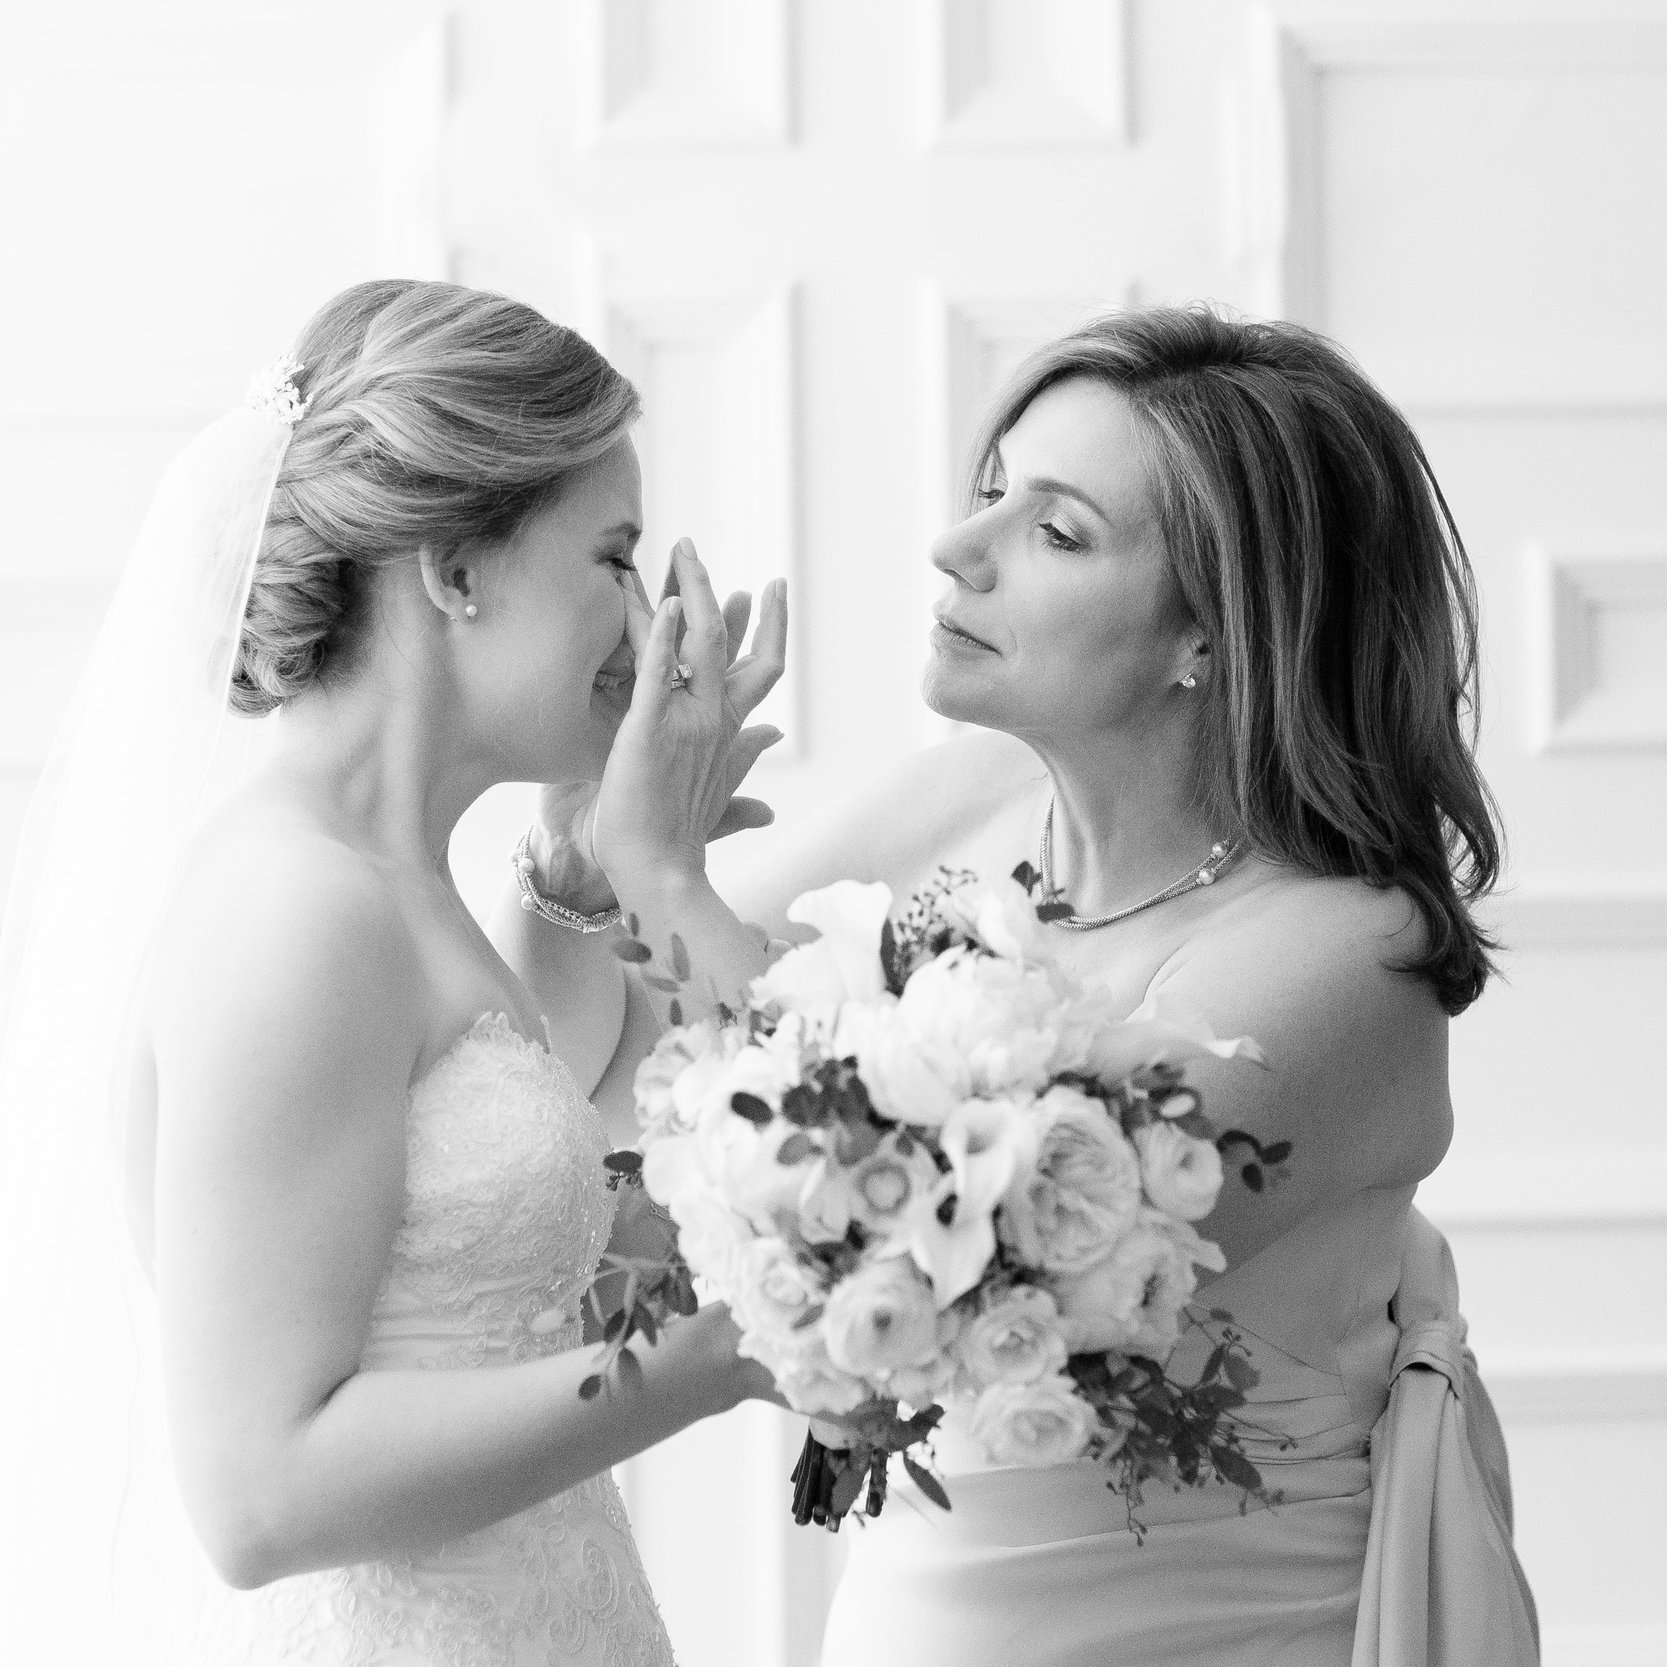 Brides hair and makeup by Nancy, mother makeup by Lindsey, hair by Nancy. Photo by Adrienne Matz Photography